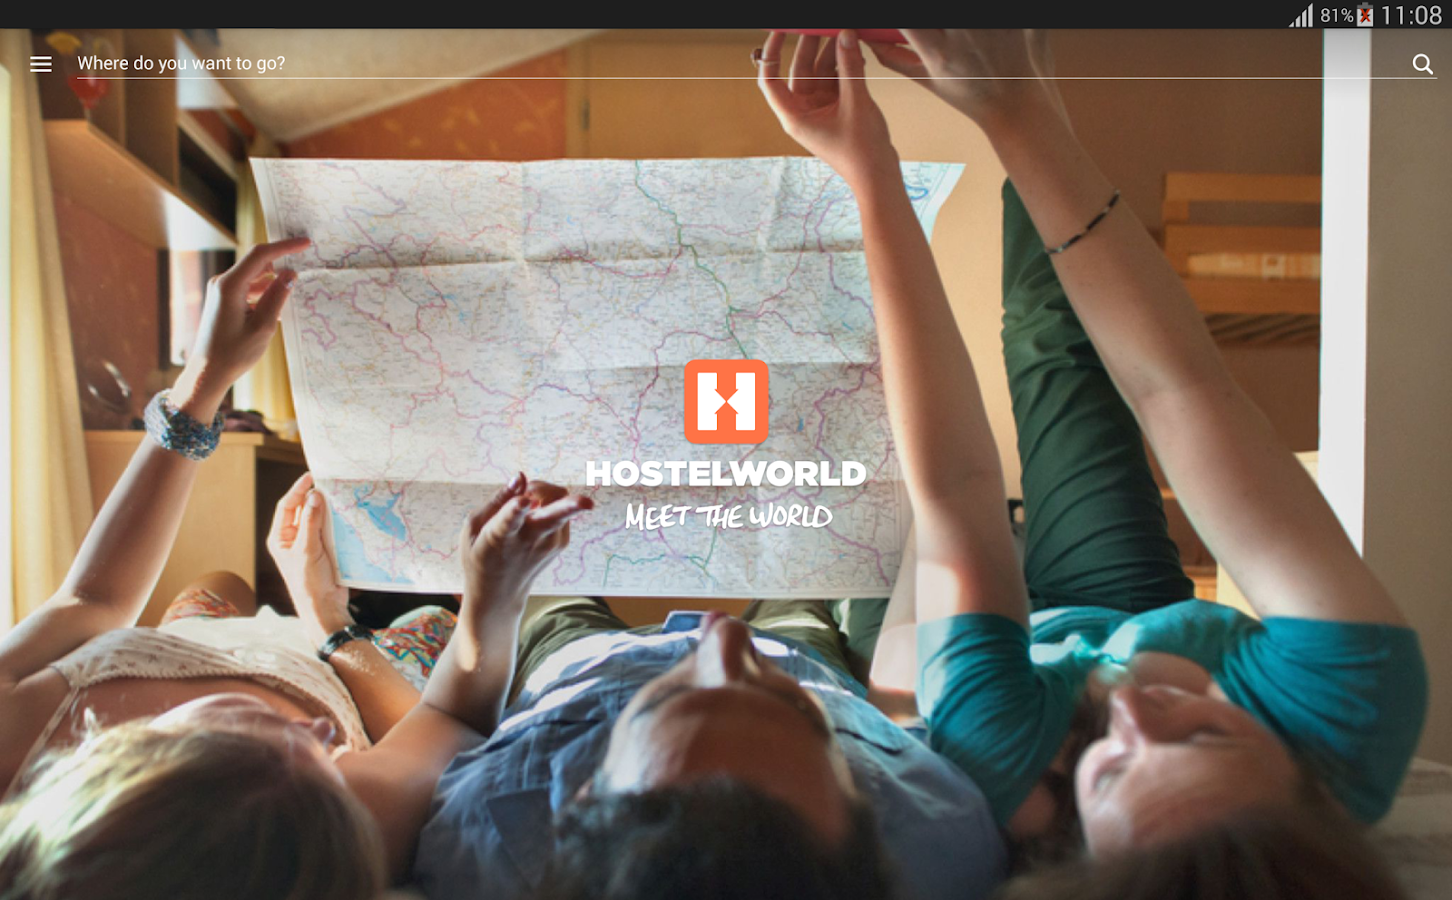 Hostelworld: Hostels & Cheap Motels Travel App- screenshot